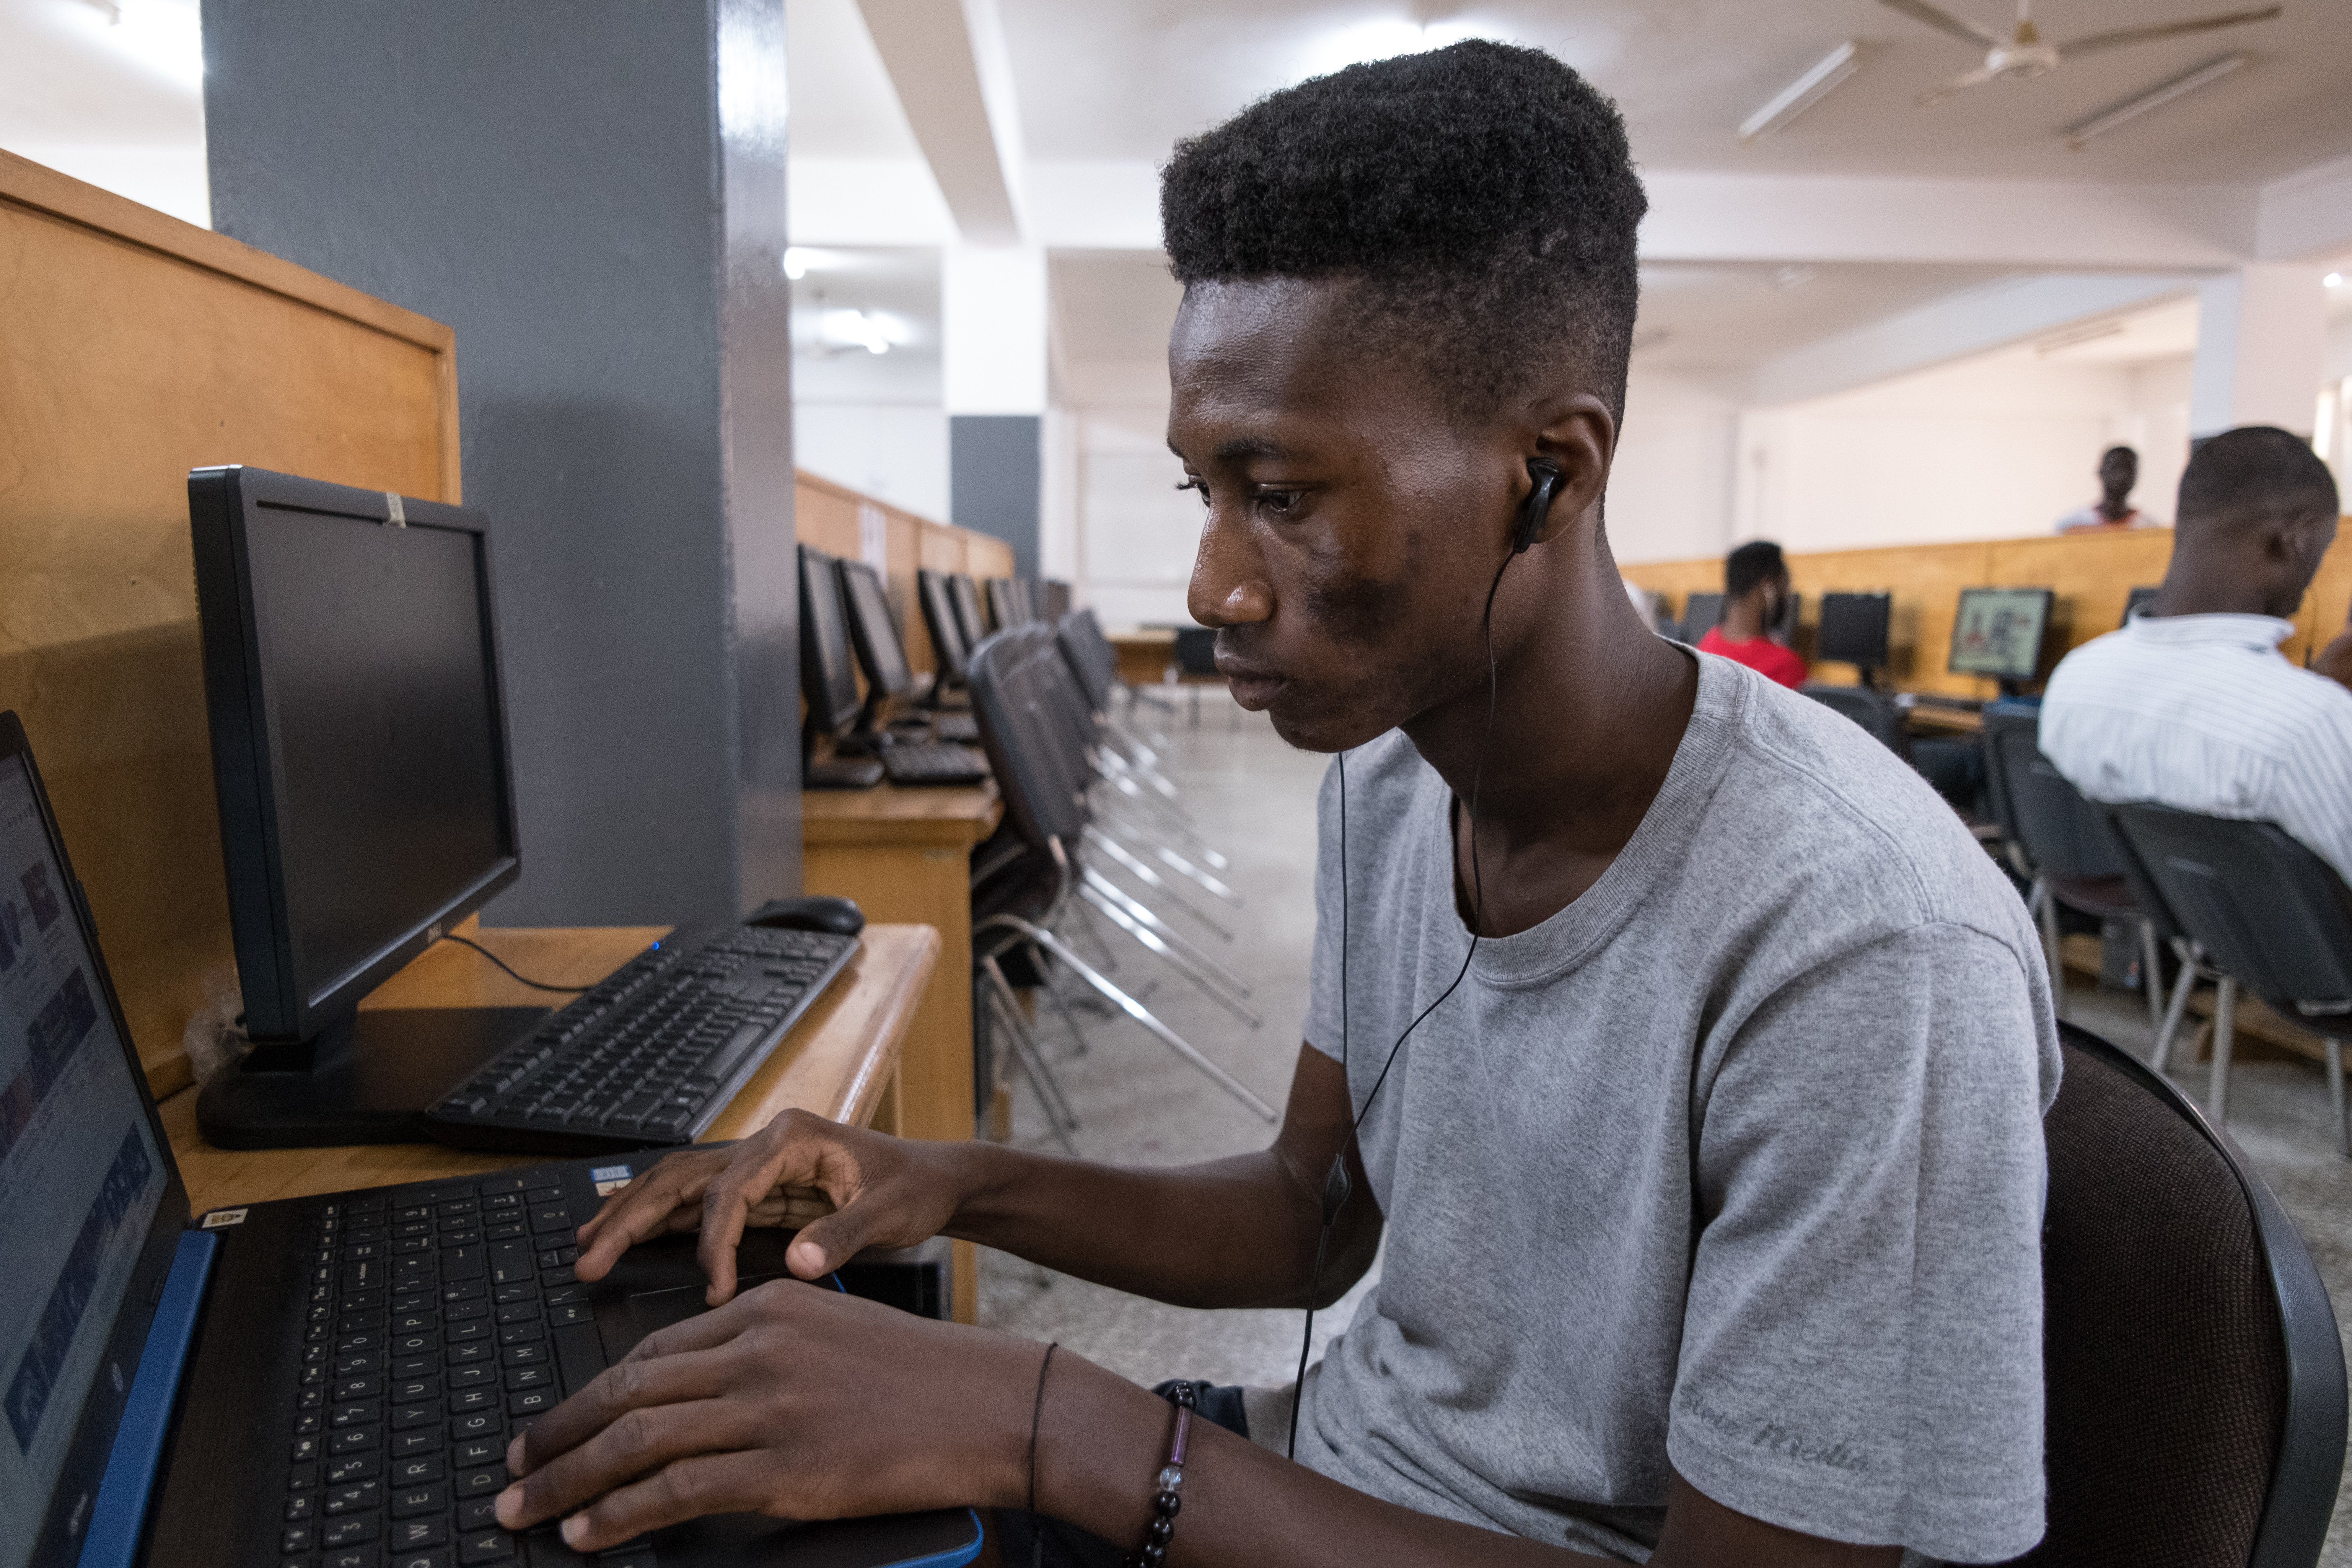 Owusu Michael19 years old, second year student at University of Ghana Accra computer lab where Csquared is providing fibre broad internet service